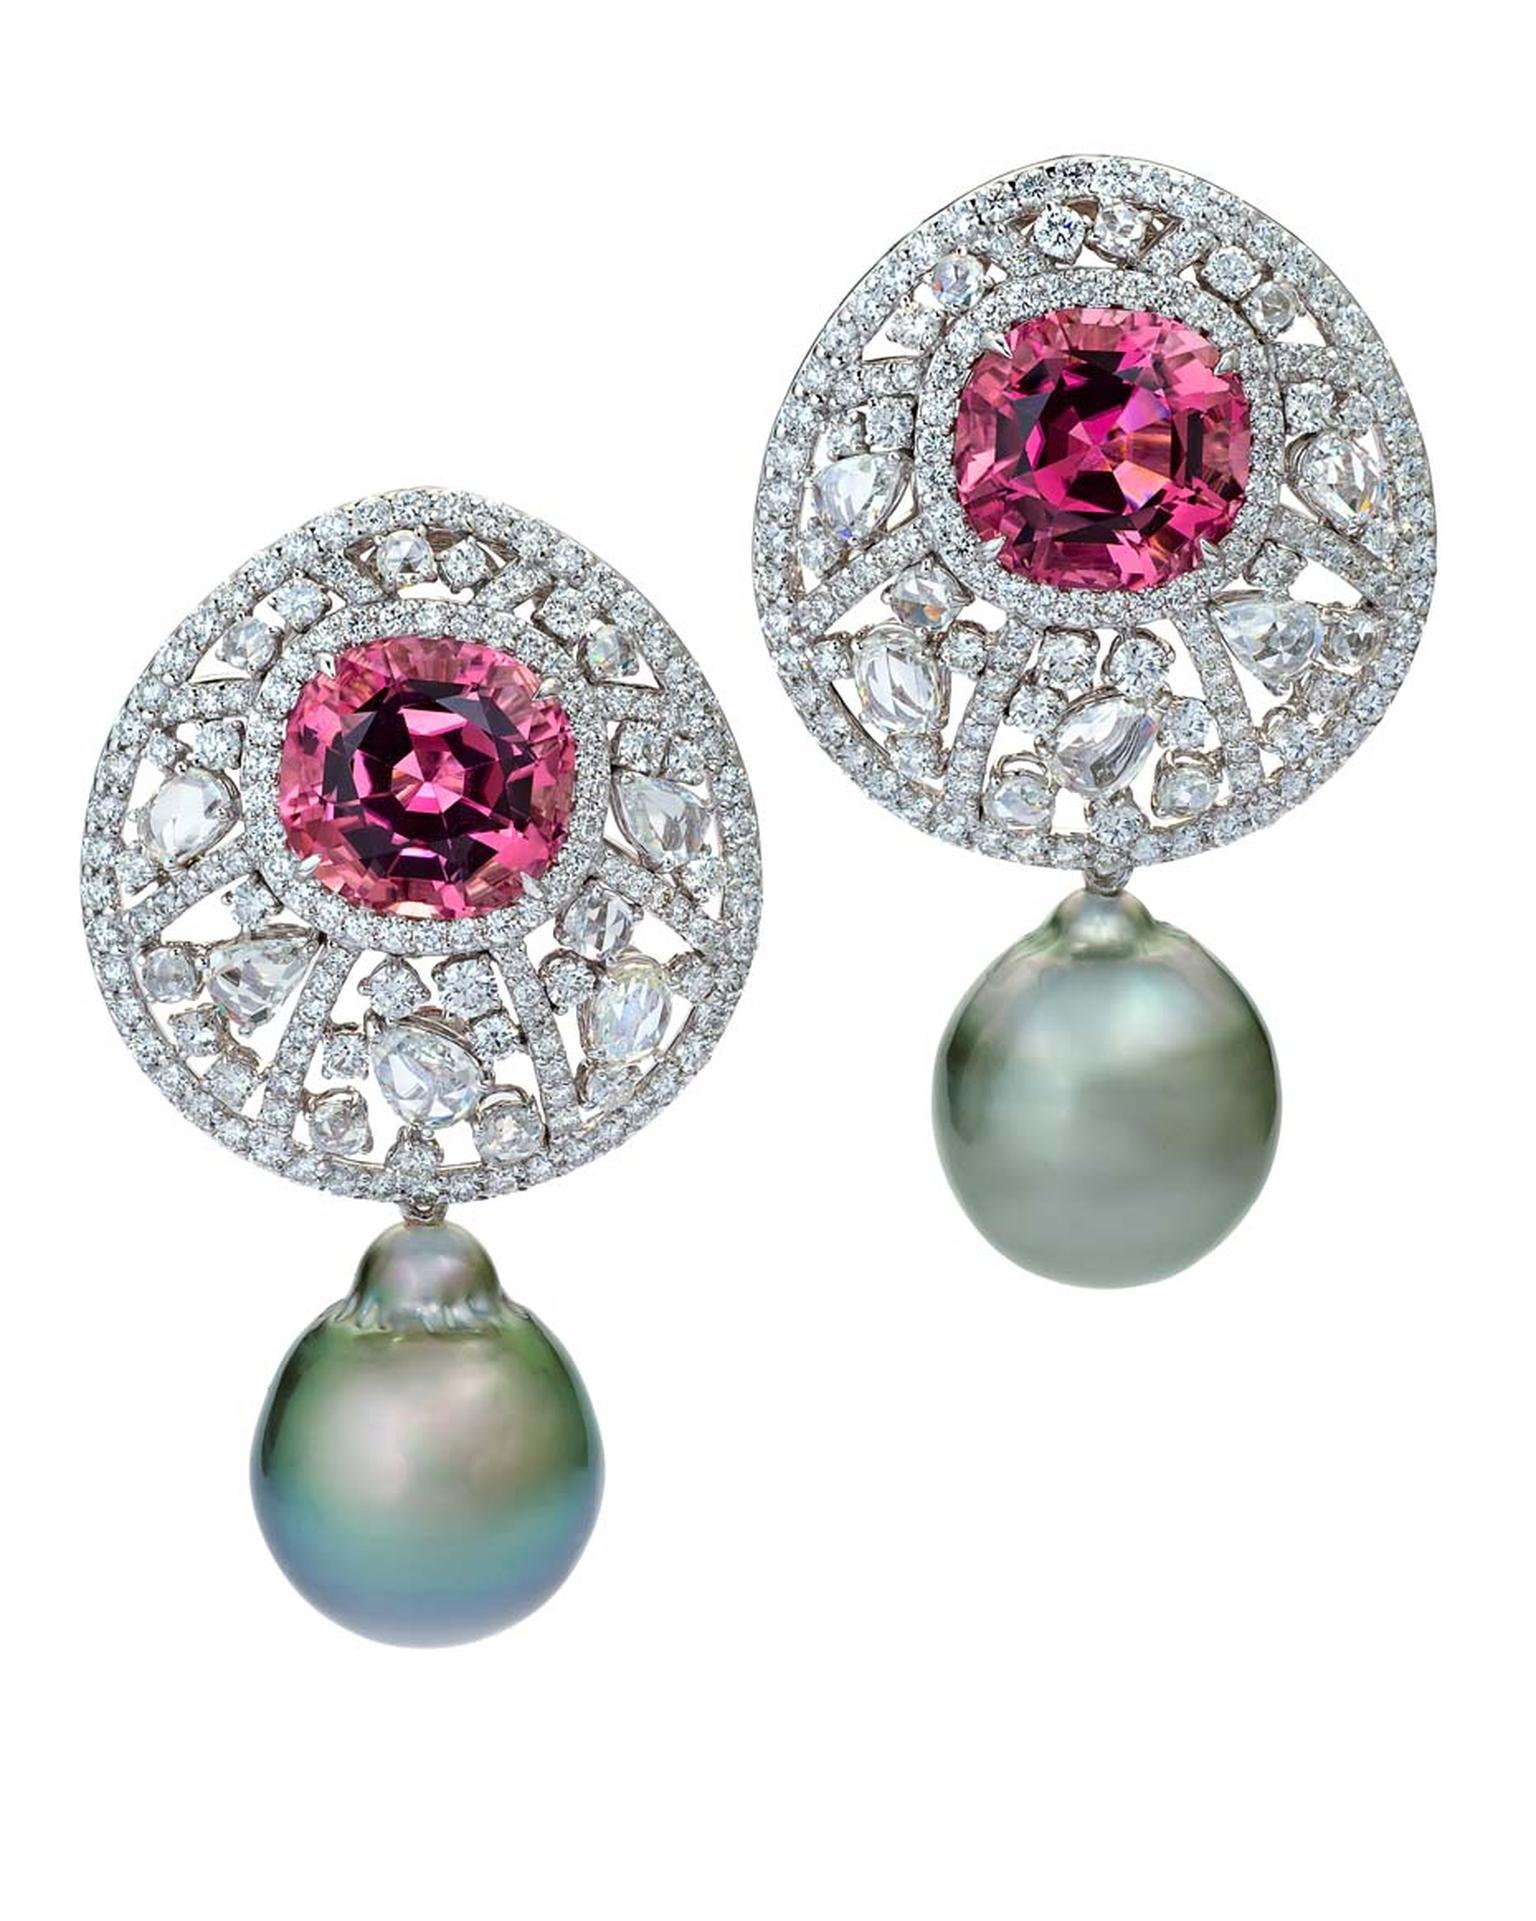 Margot McKinney pink tourmaline, white diamond and Tahitian pearl earrings.